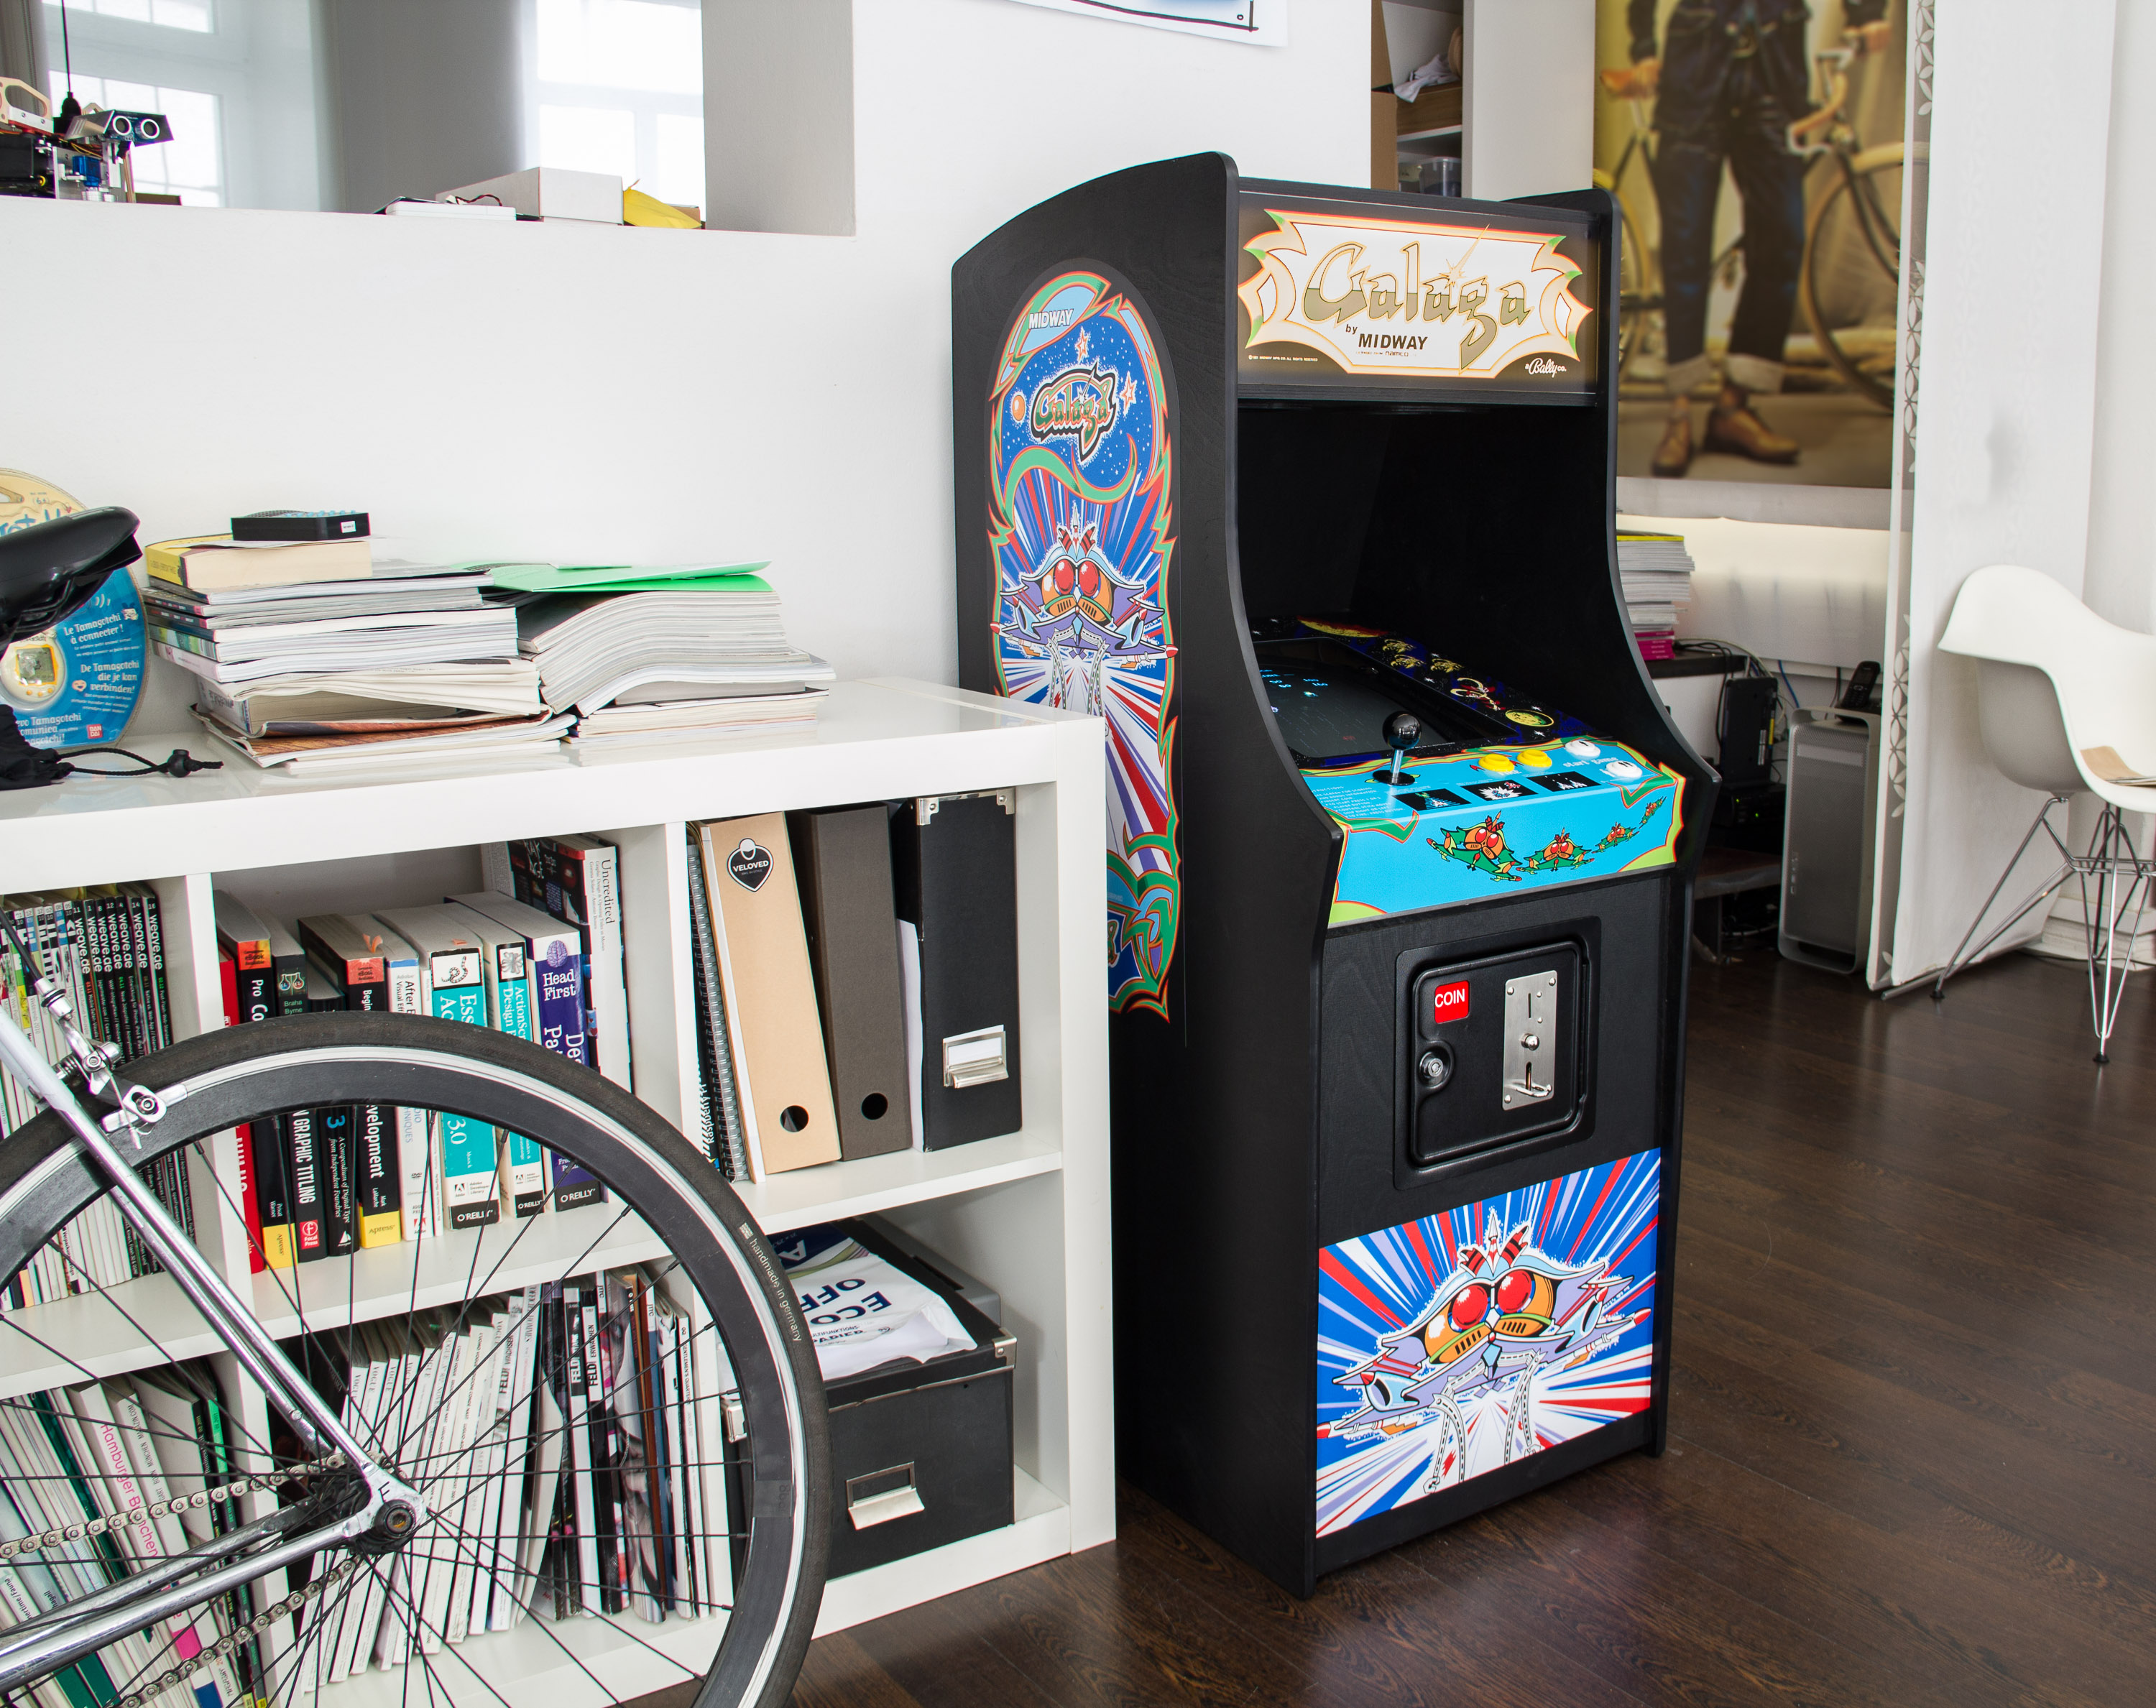 galaga arcade cabinet tinkerlog. Black Bedroom Furniture Sets. Home Design Ideas